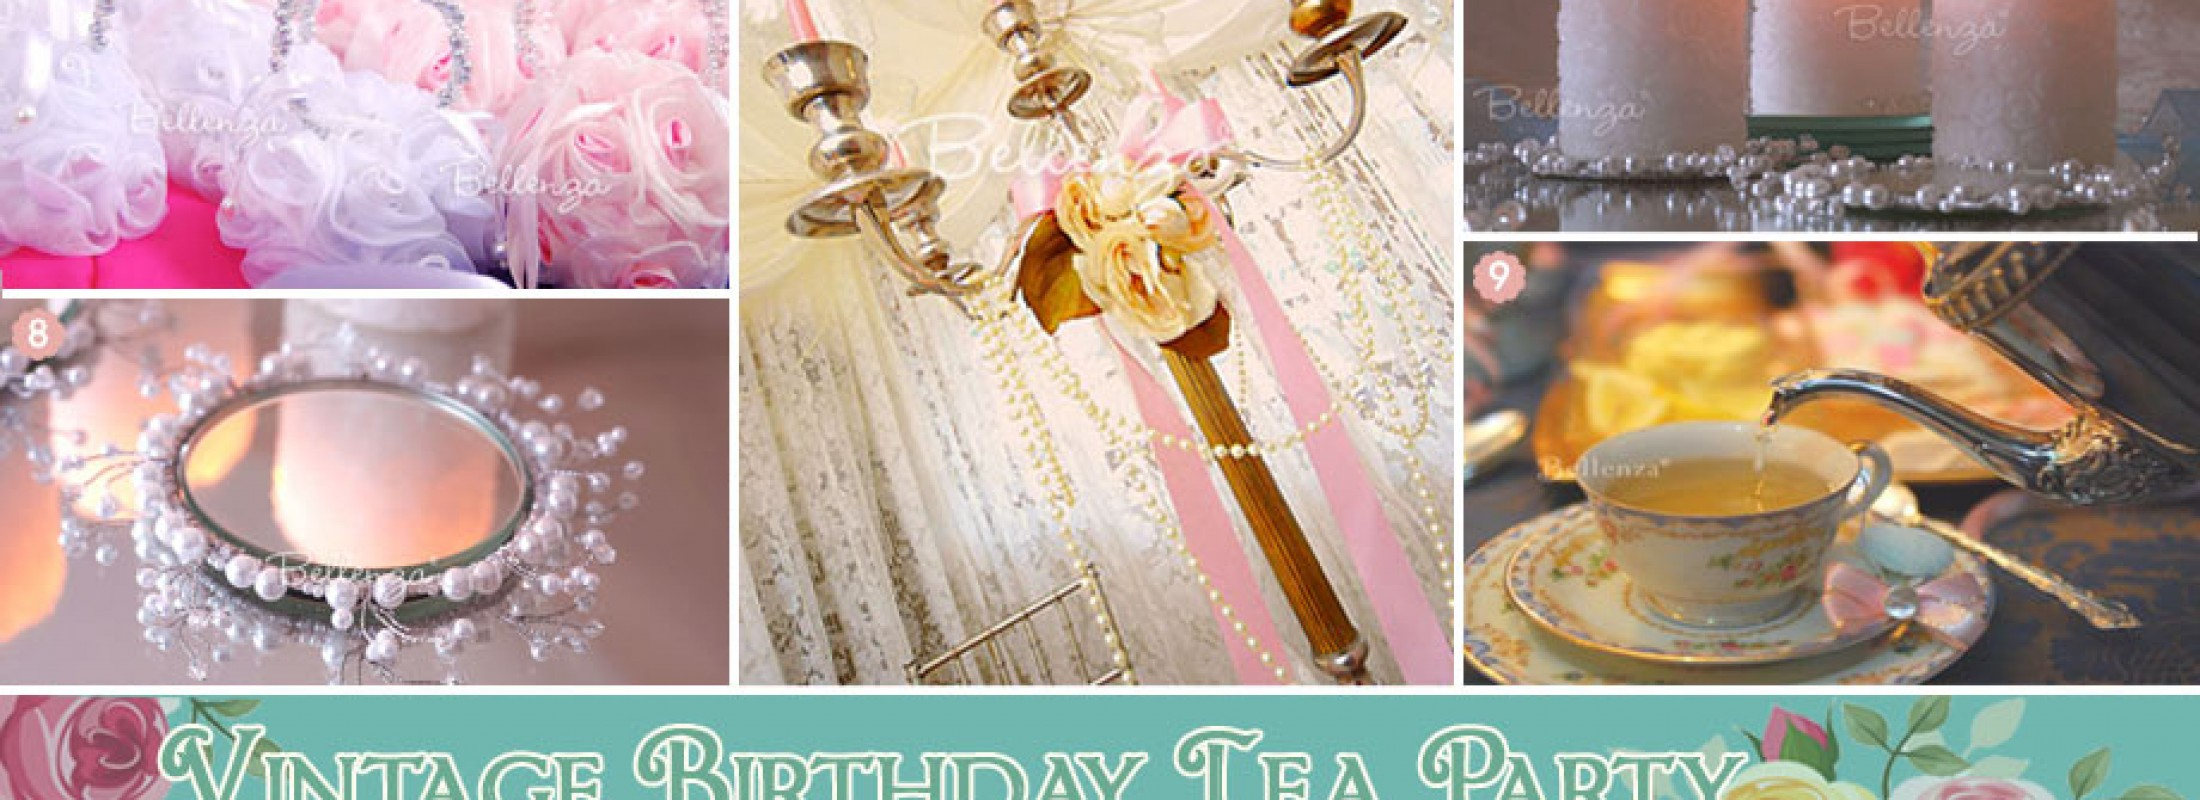 Pearls, roses, and lace birthday tea party with vintage decorations.